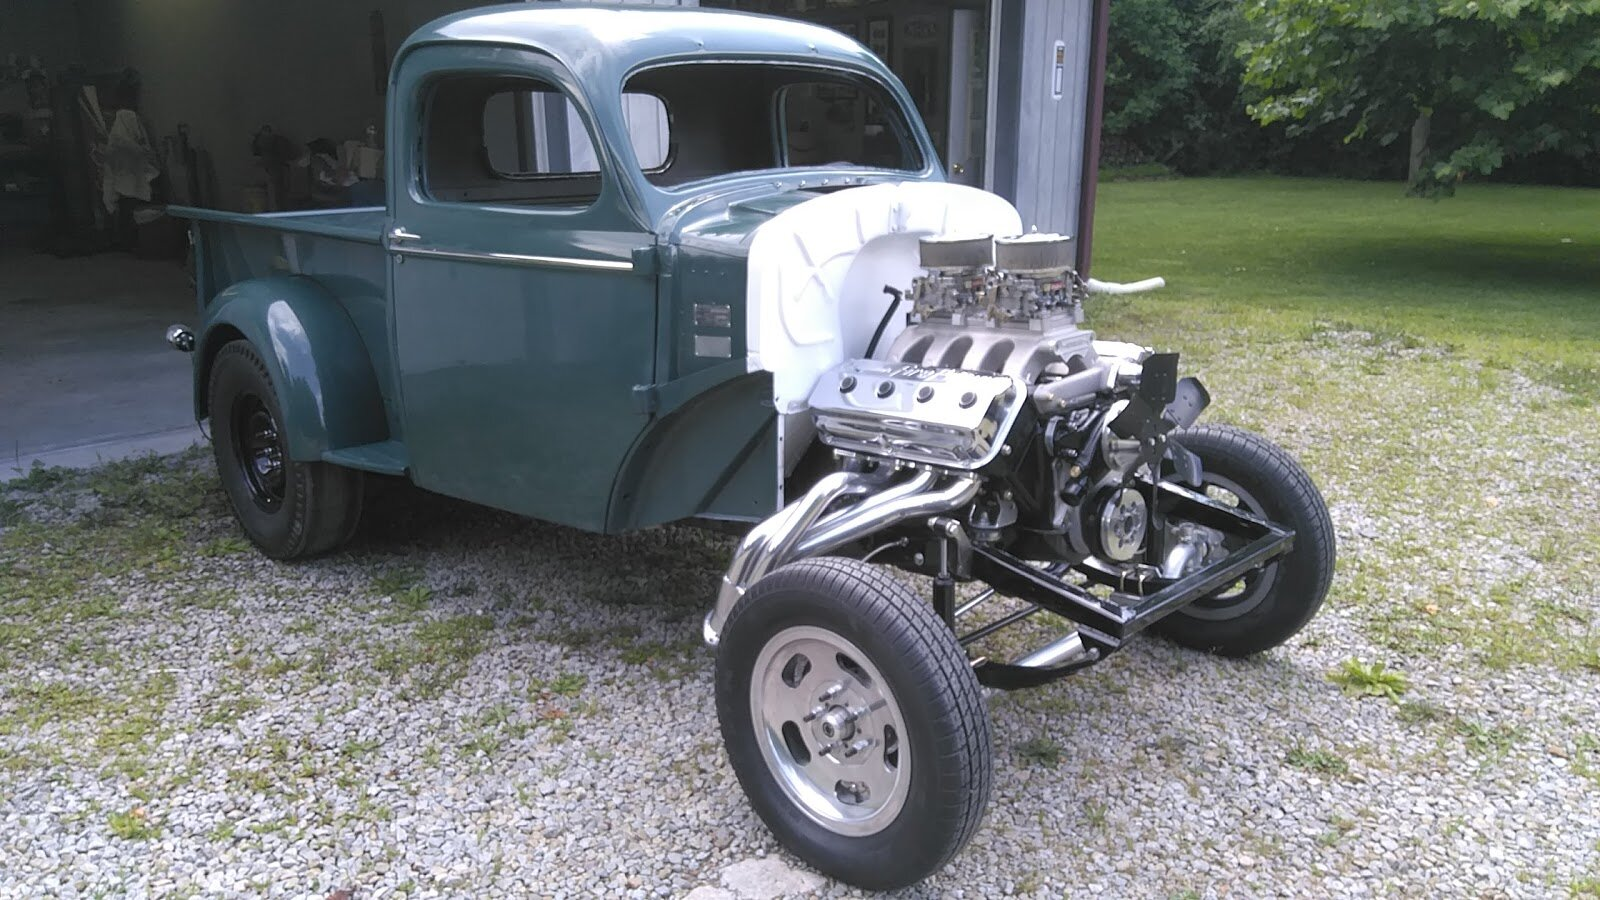 Dave's 1940 Willy's Pickup